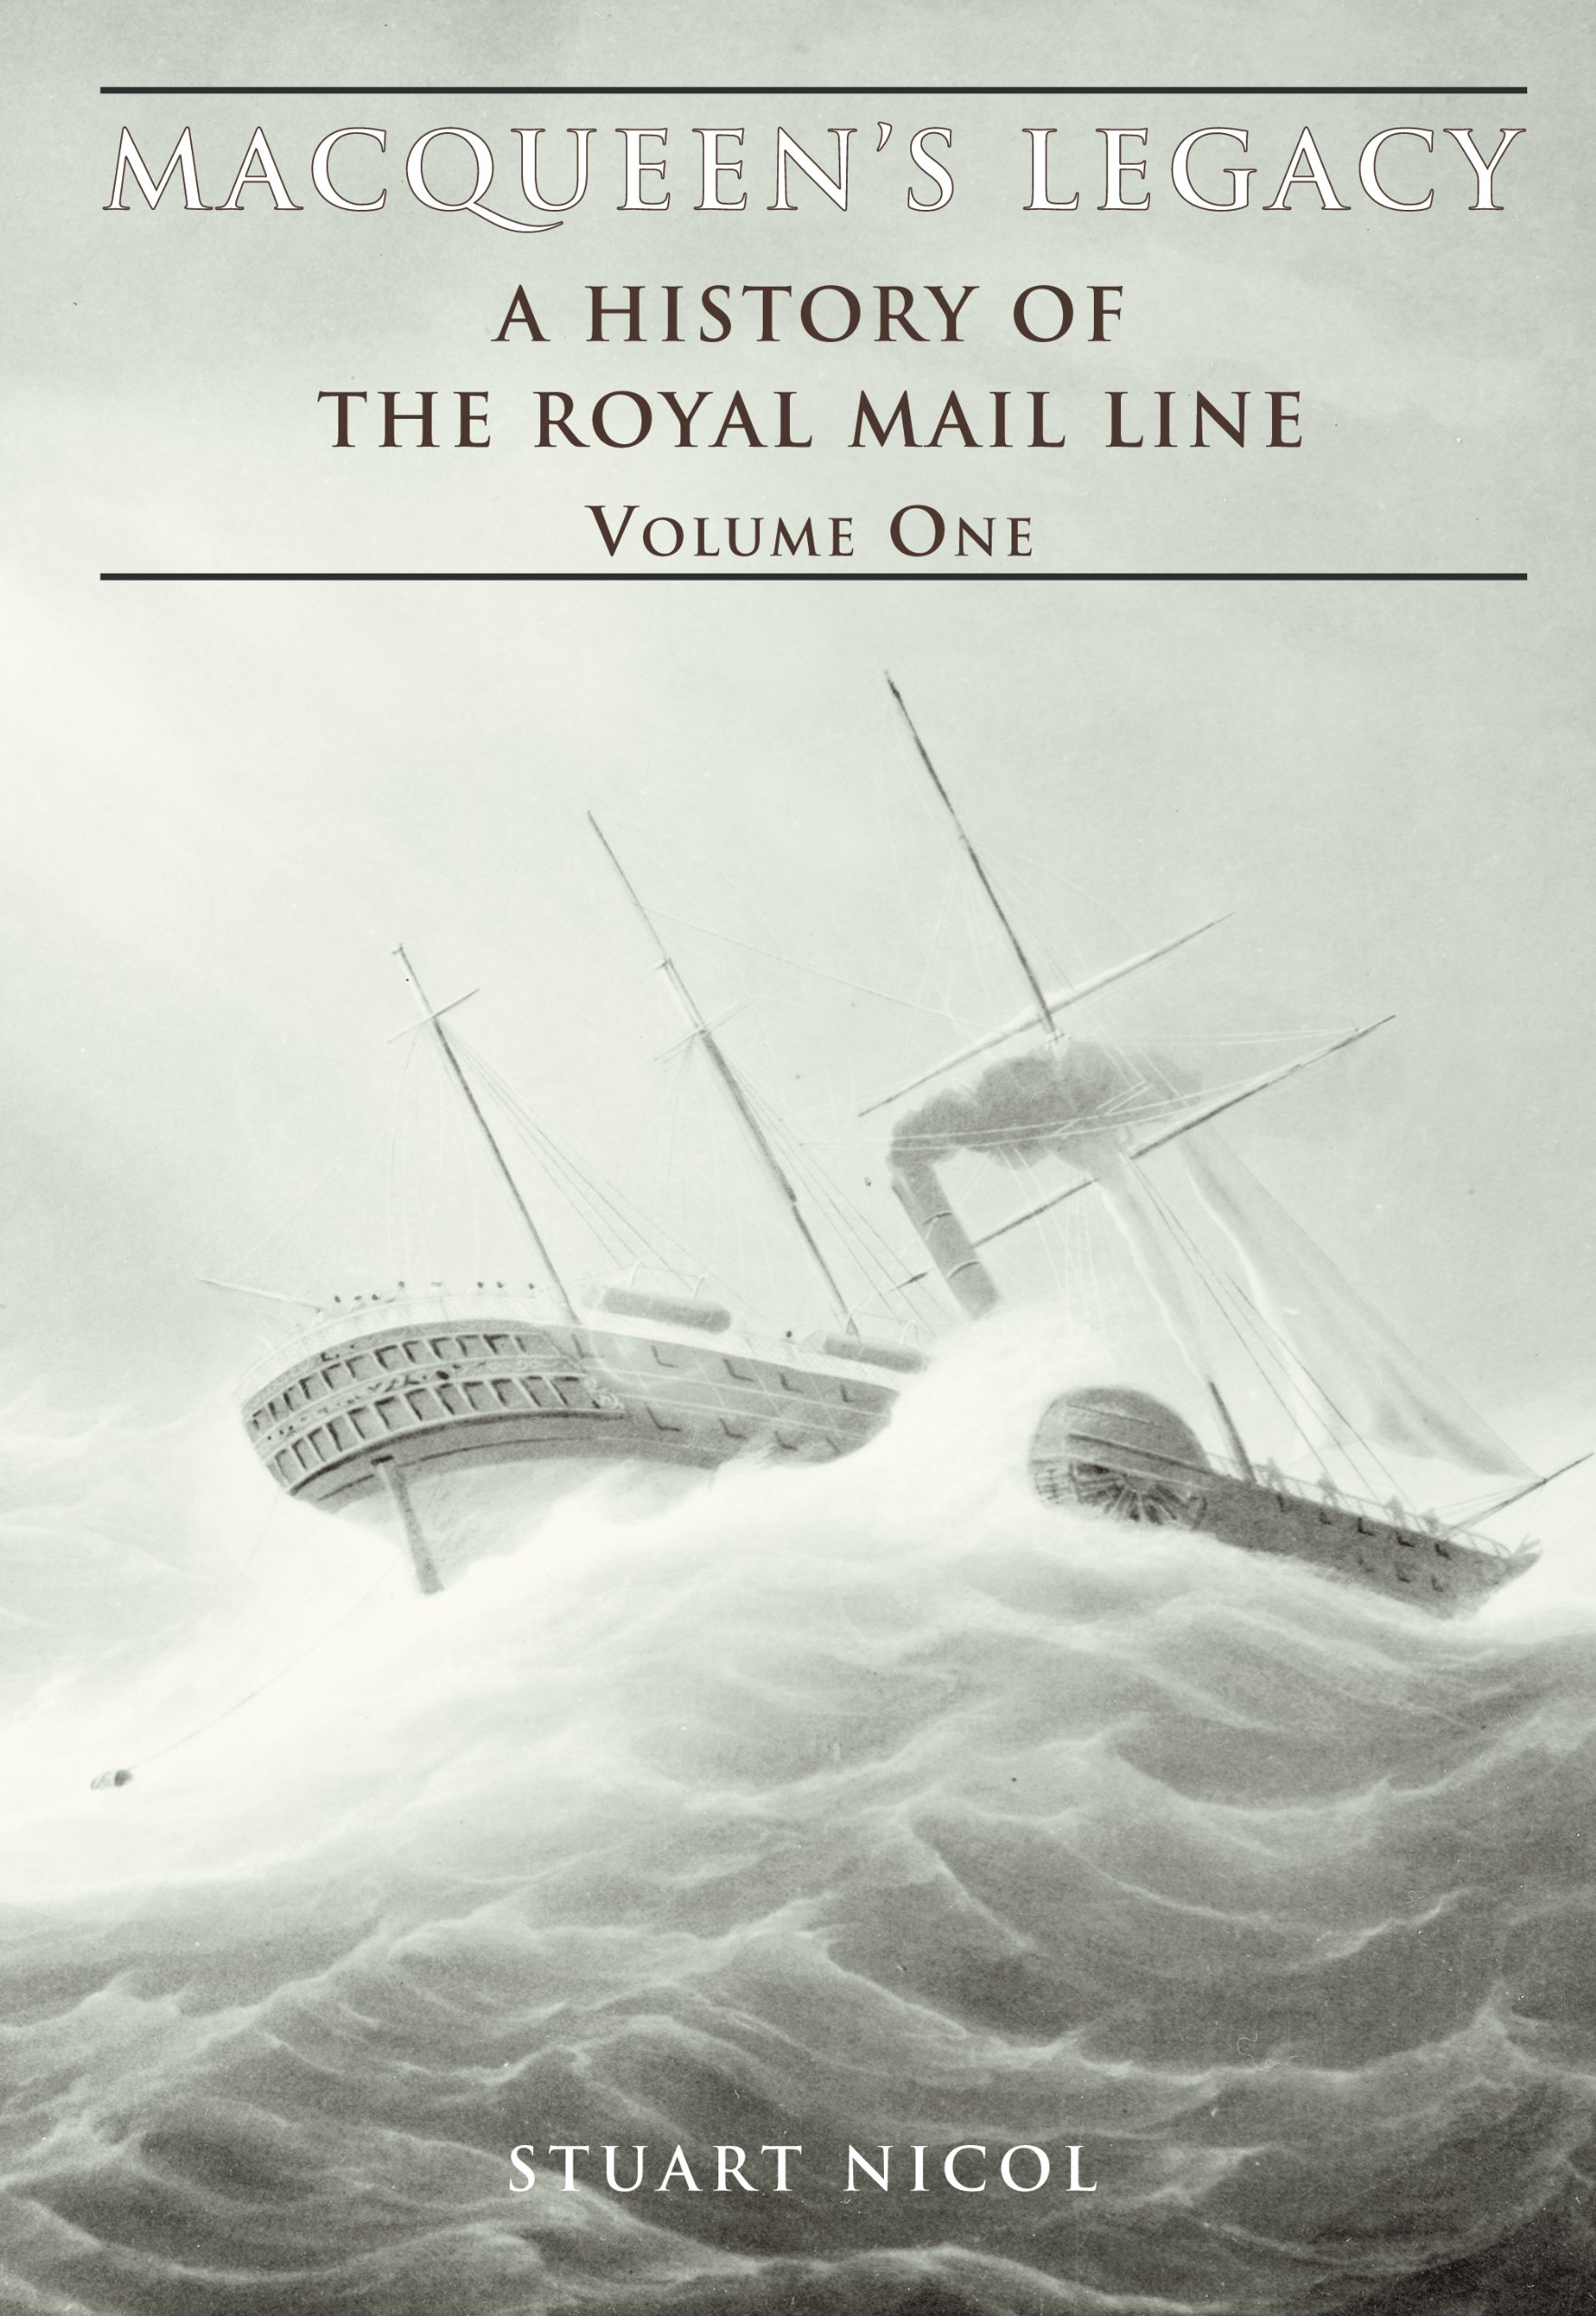 Macqueen's Legacy Volume One: A History of the Royal Mail Line PDF